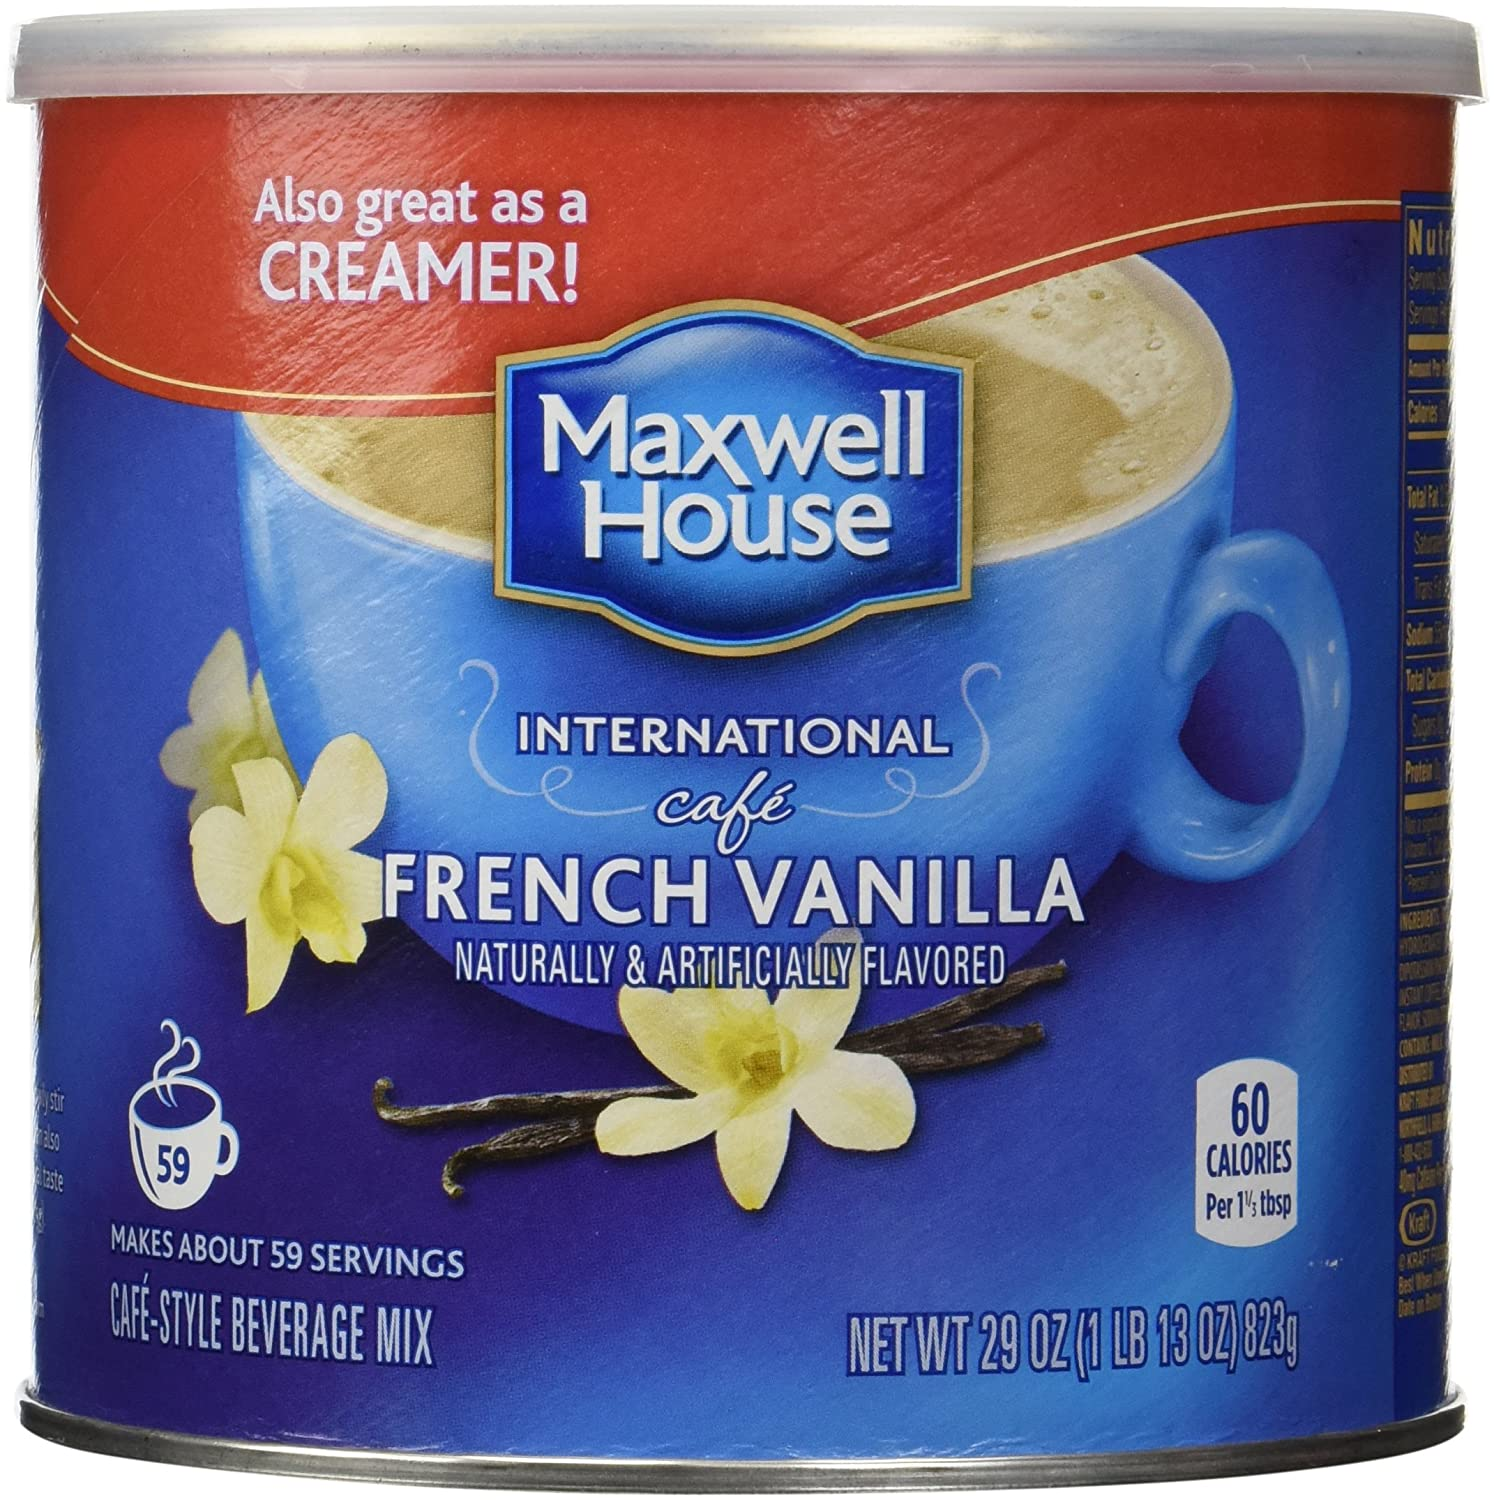 Maxwell House International Coffee French Vanilla Cafe, 29 Ounce Cans KRAFT HEINZ FOODS COMPANY 00043000056097